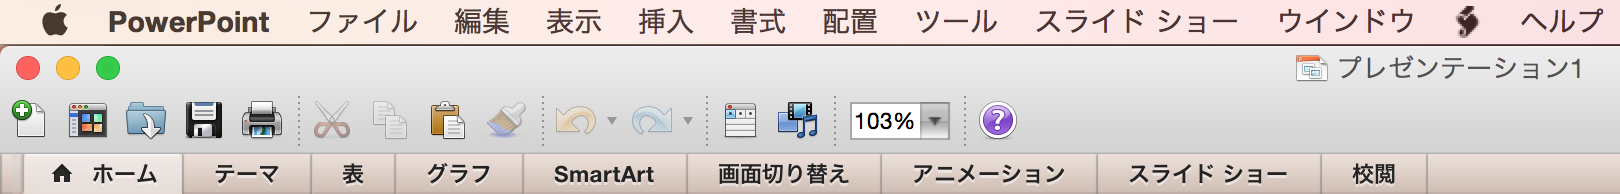 PowerPoint2011のタブ一覧